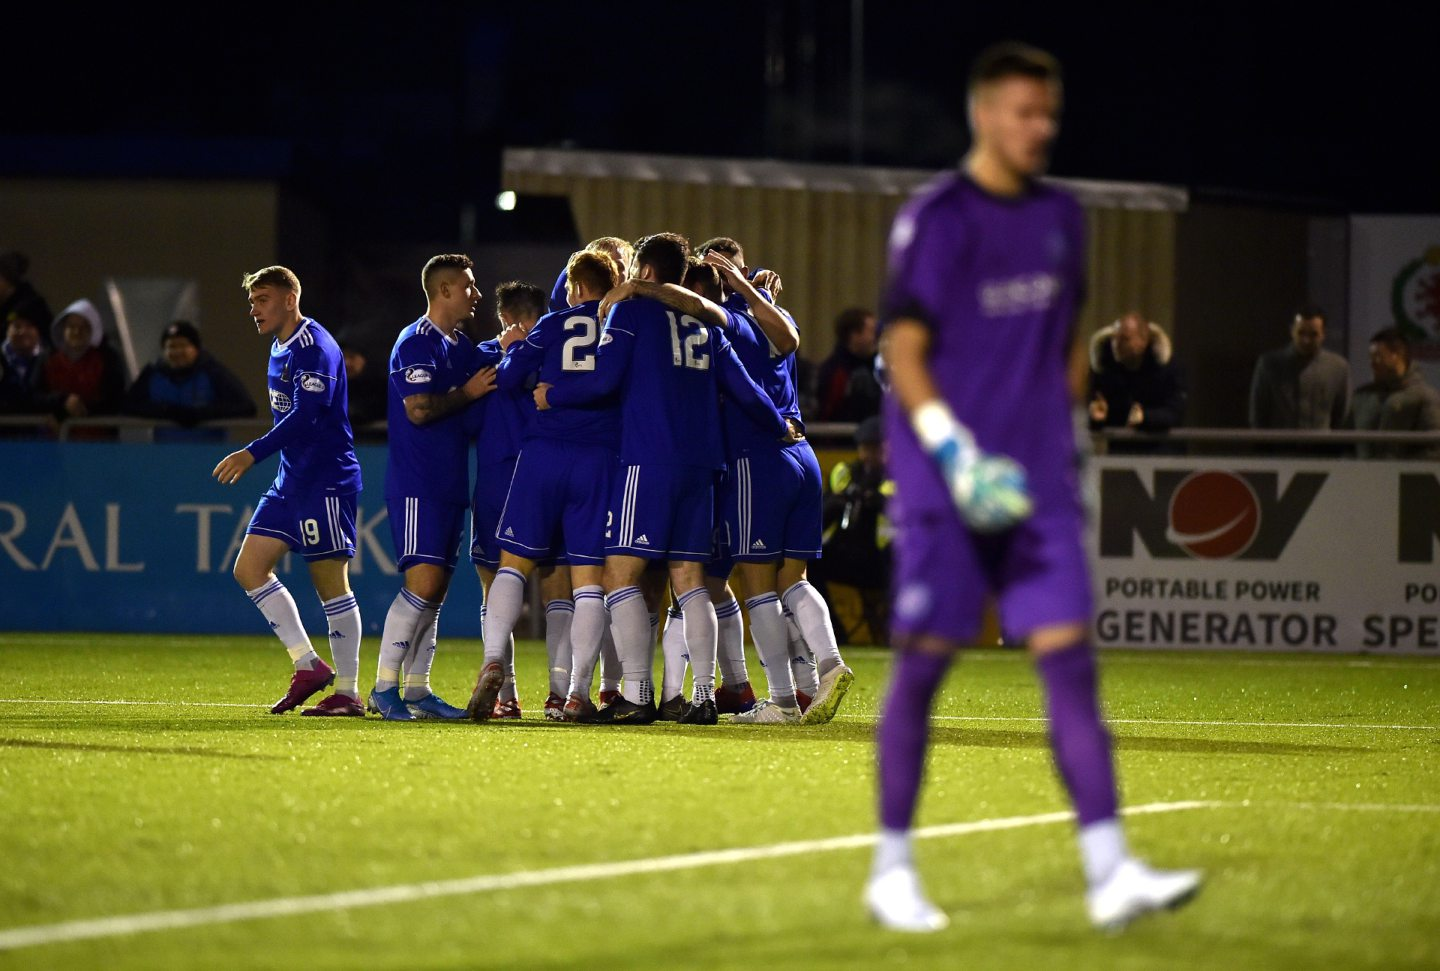 Cove Rangers will play in League One this season